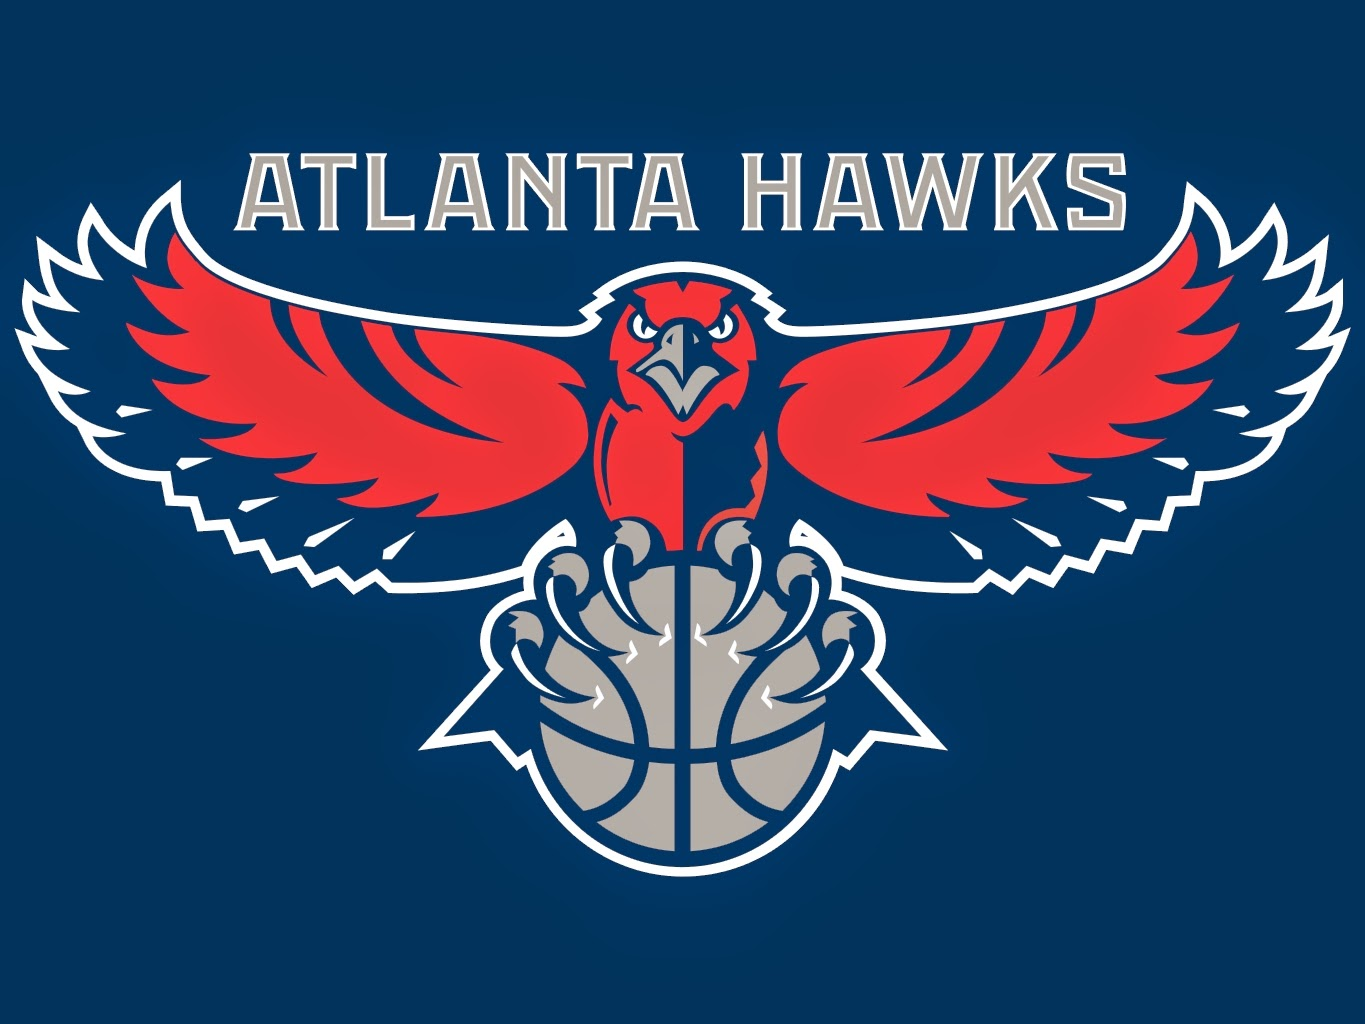 Atlanta Hawks wallpapers background blue